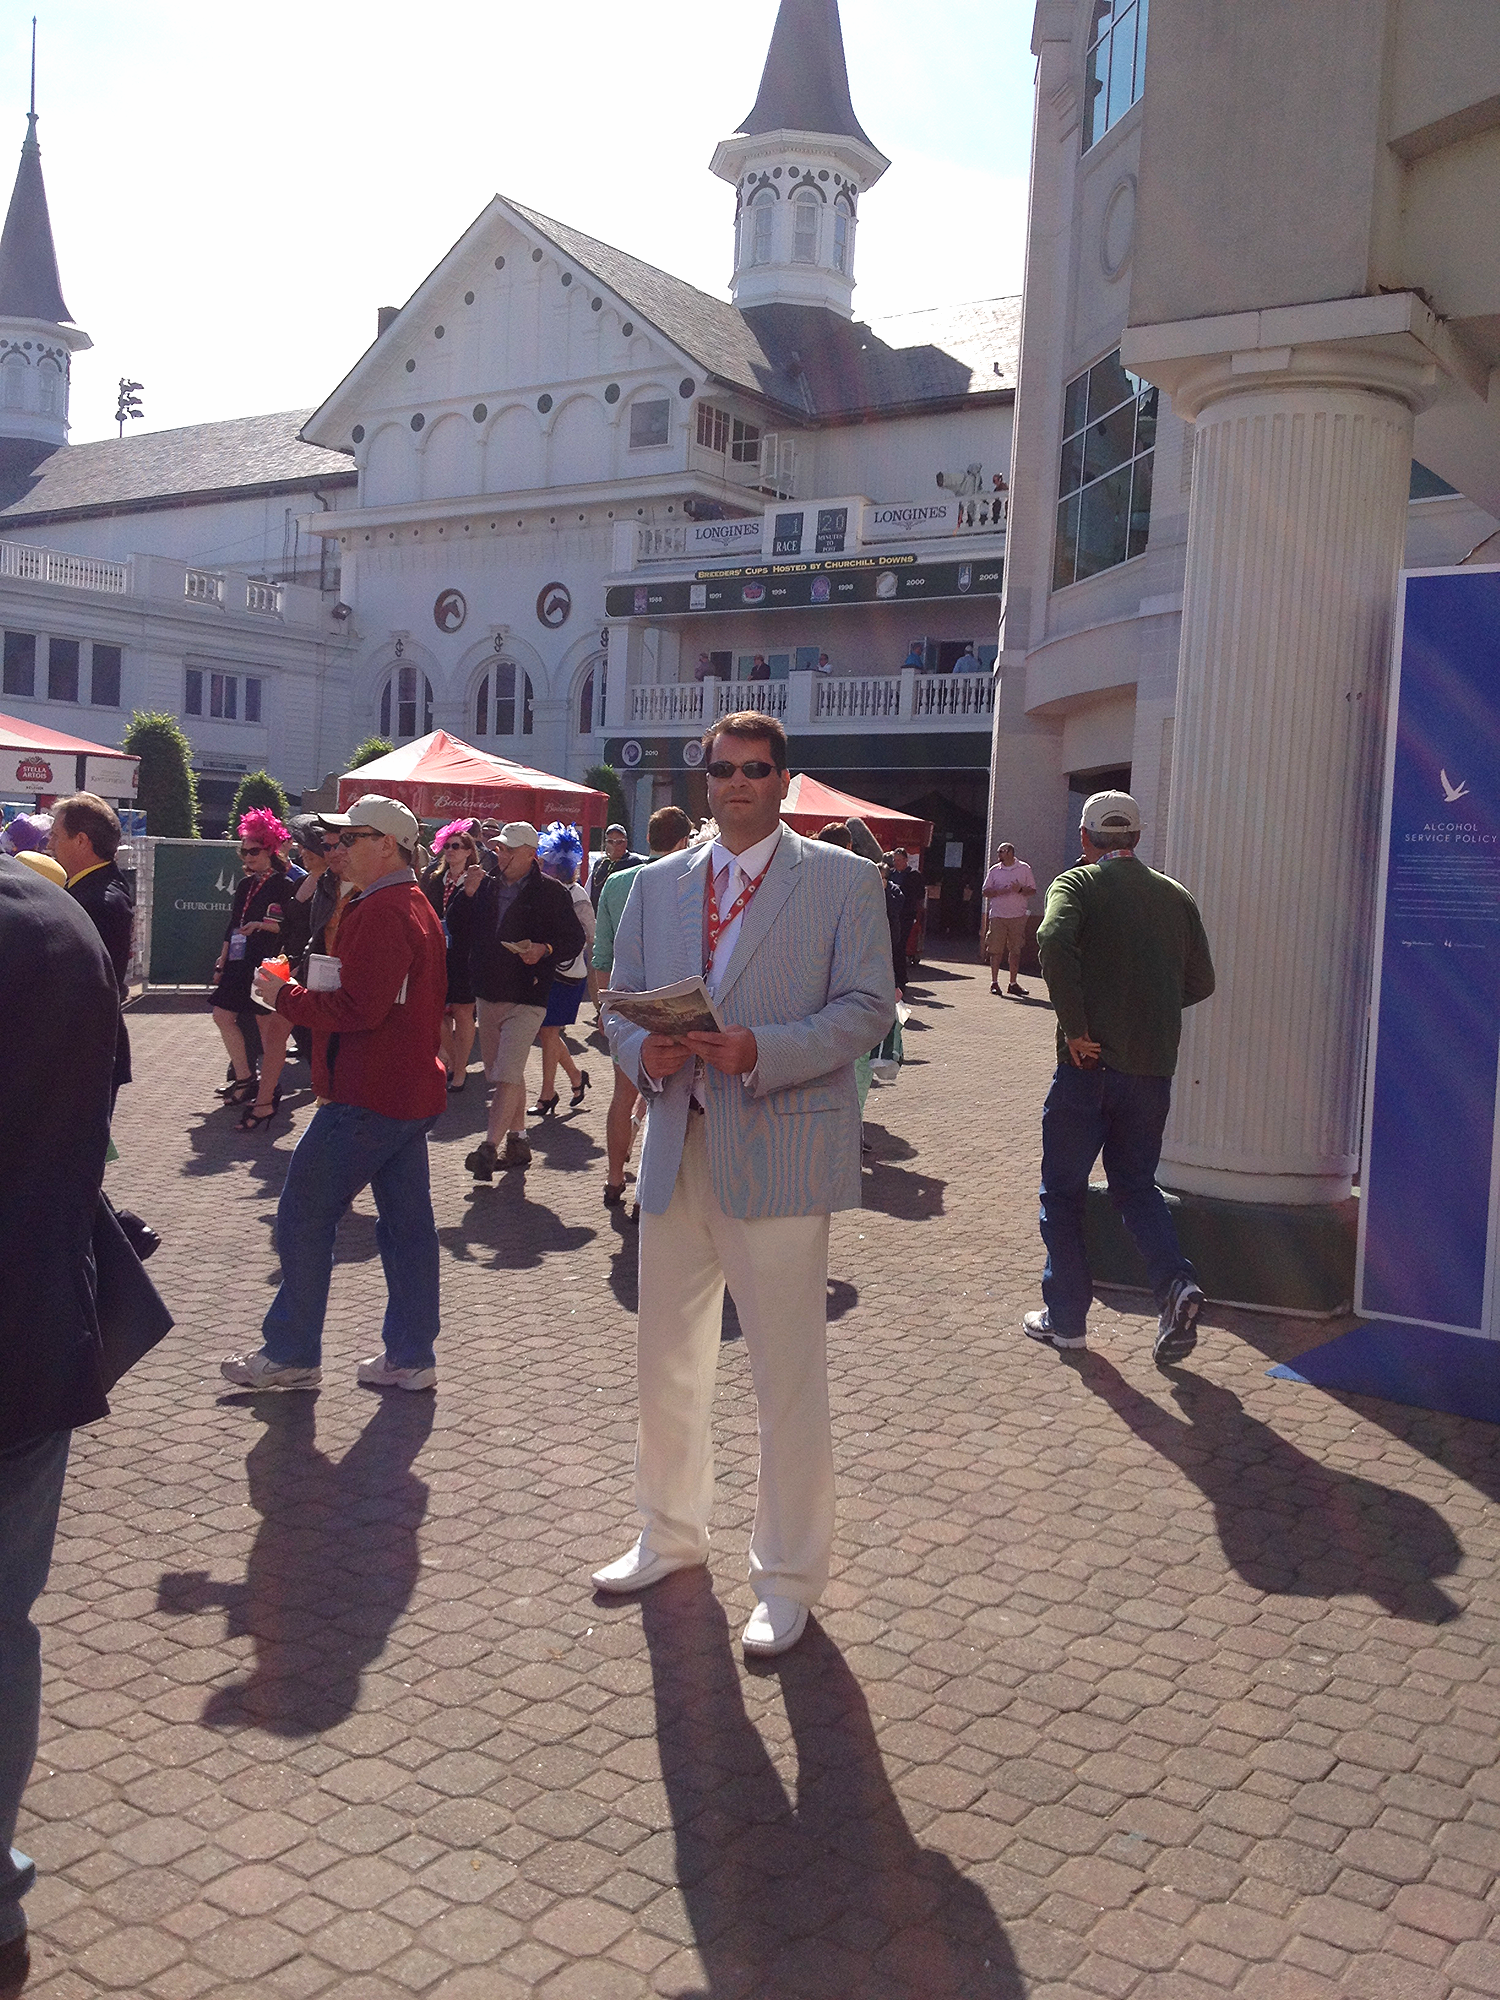 Tom Carley On Kentucky Derby Day.  Tom Carley is a contributing correspondent to www.racehorses.com